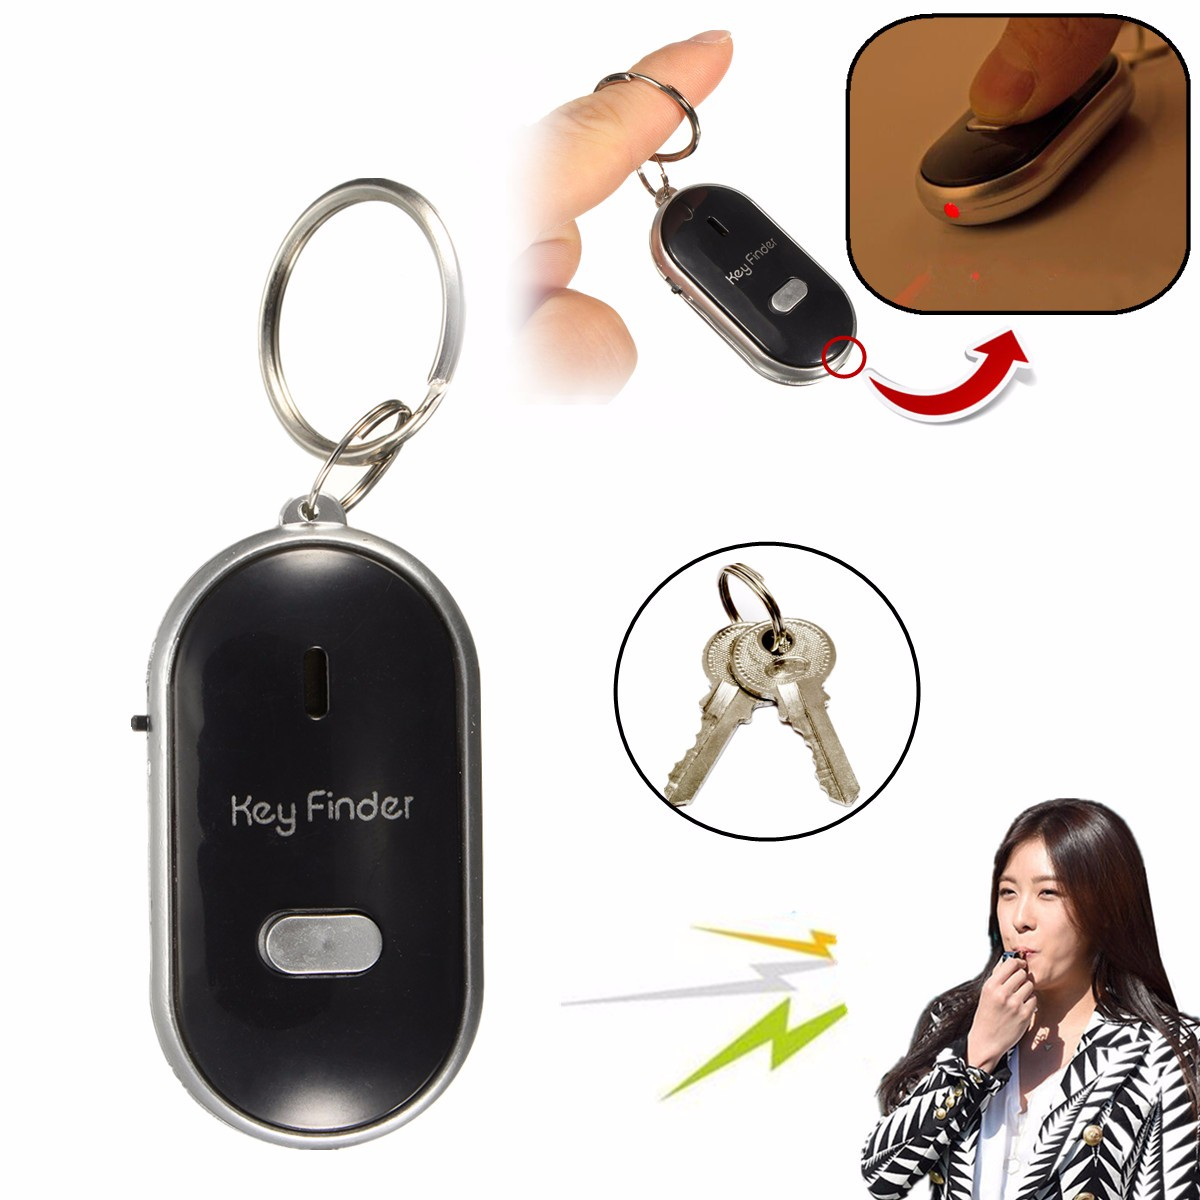 how to find a lost kluger key